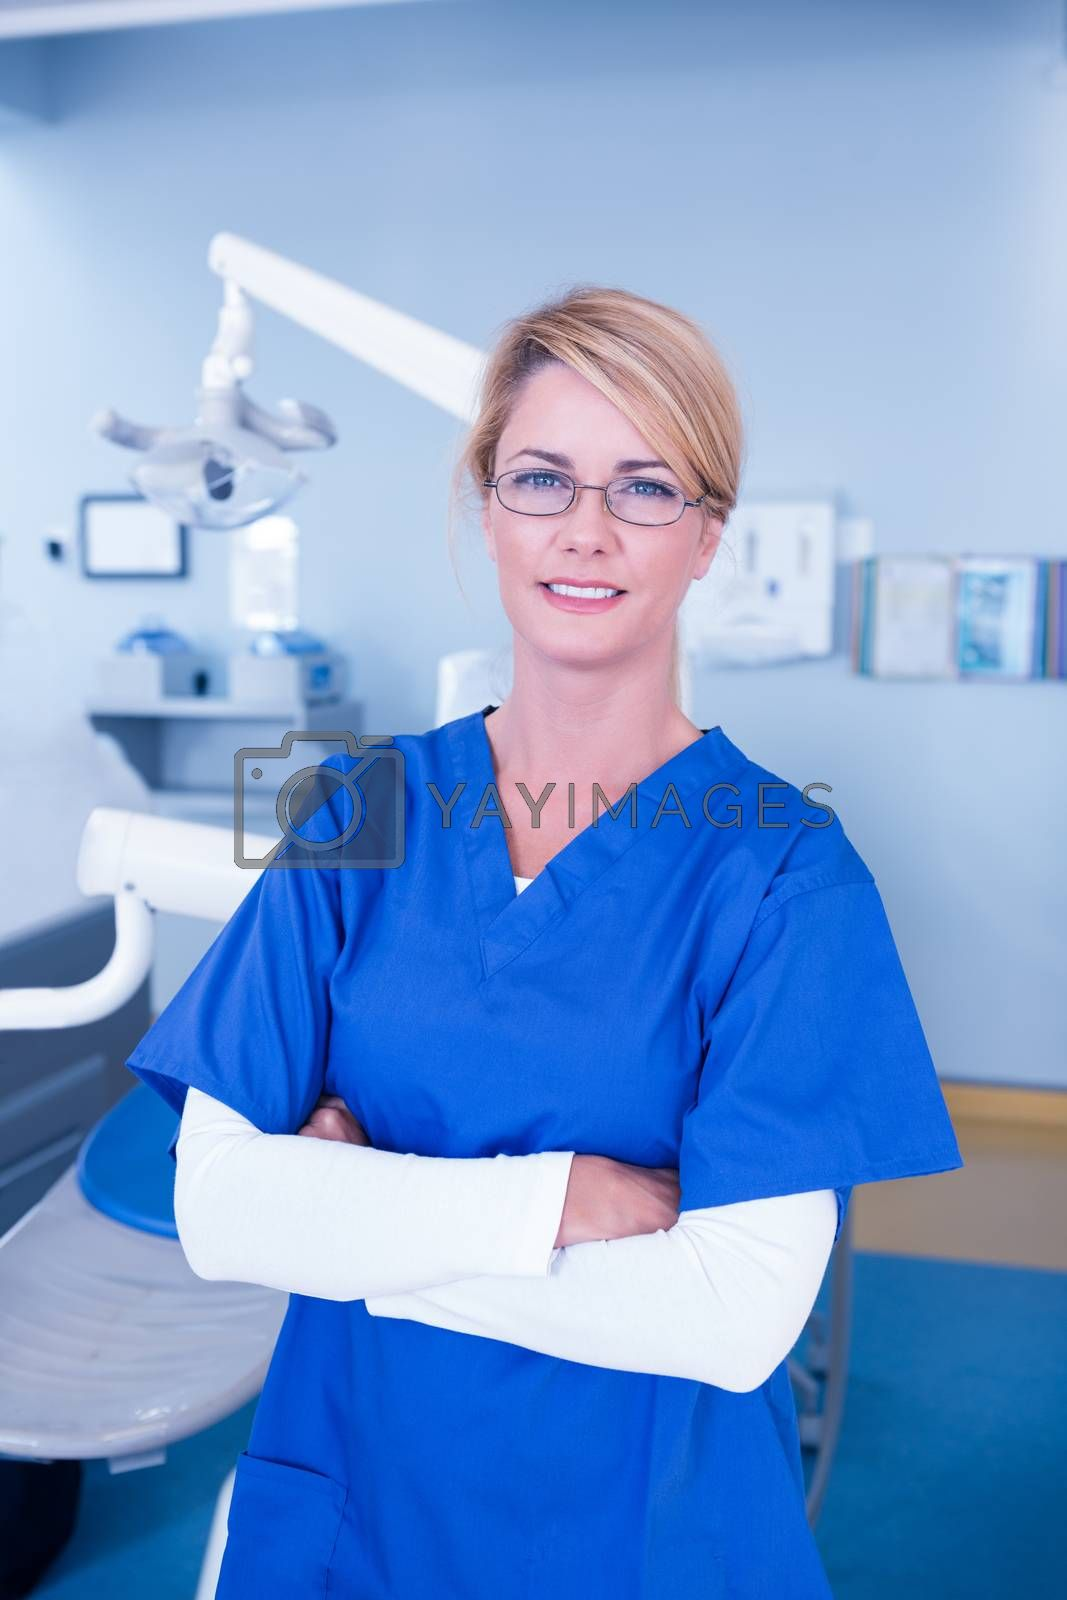 Dentist smiling at camera with arms crossed at the dental clinic